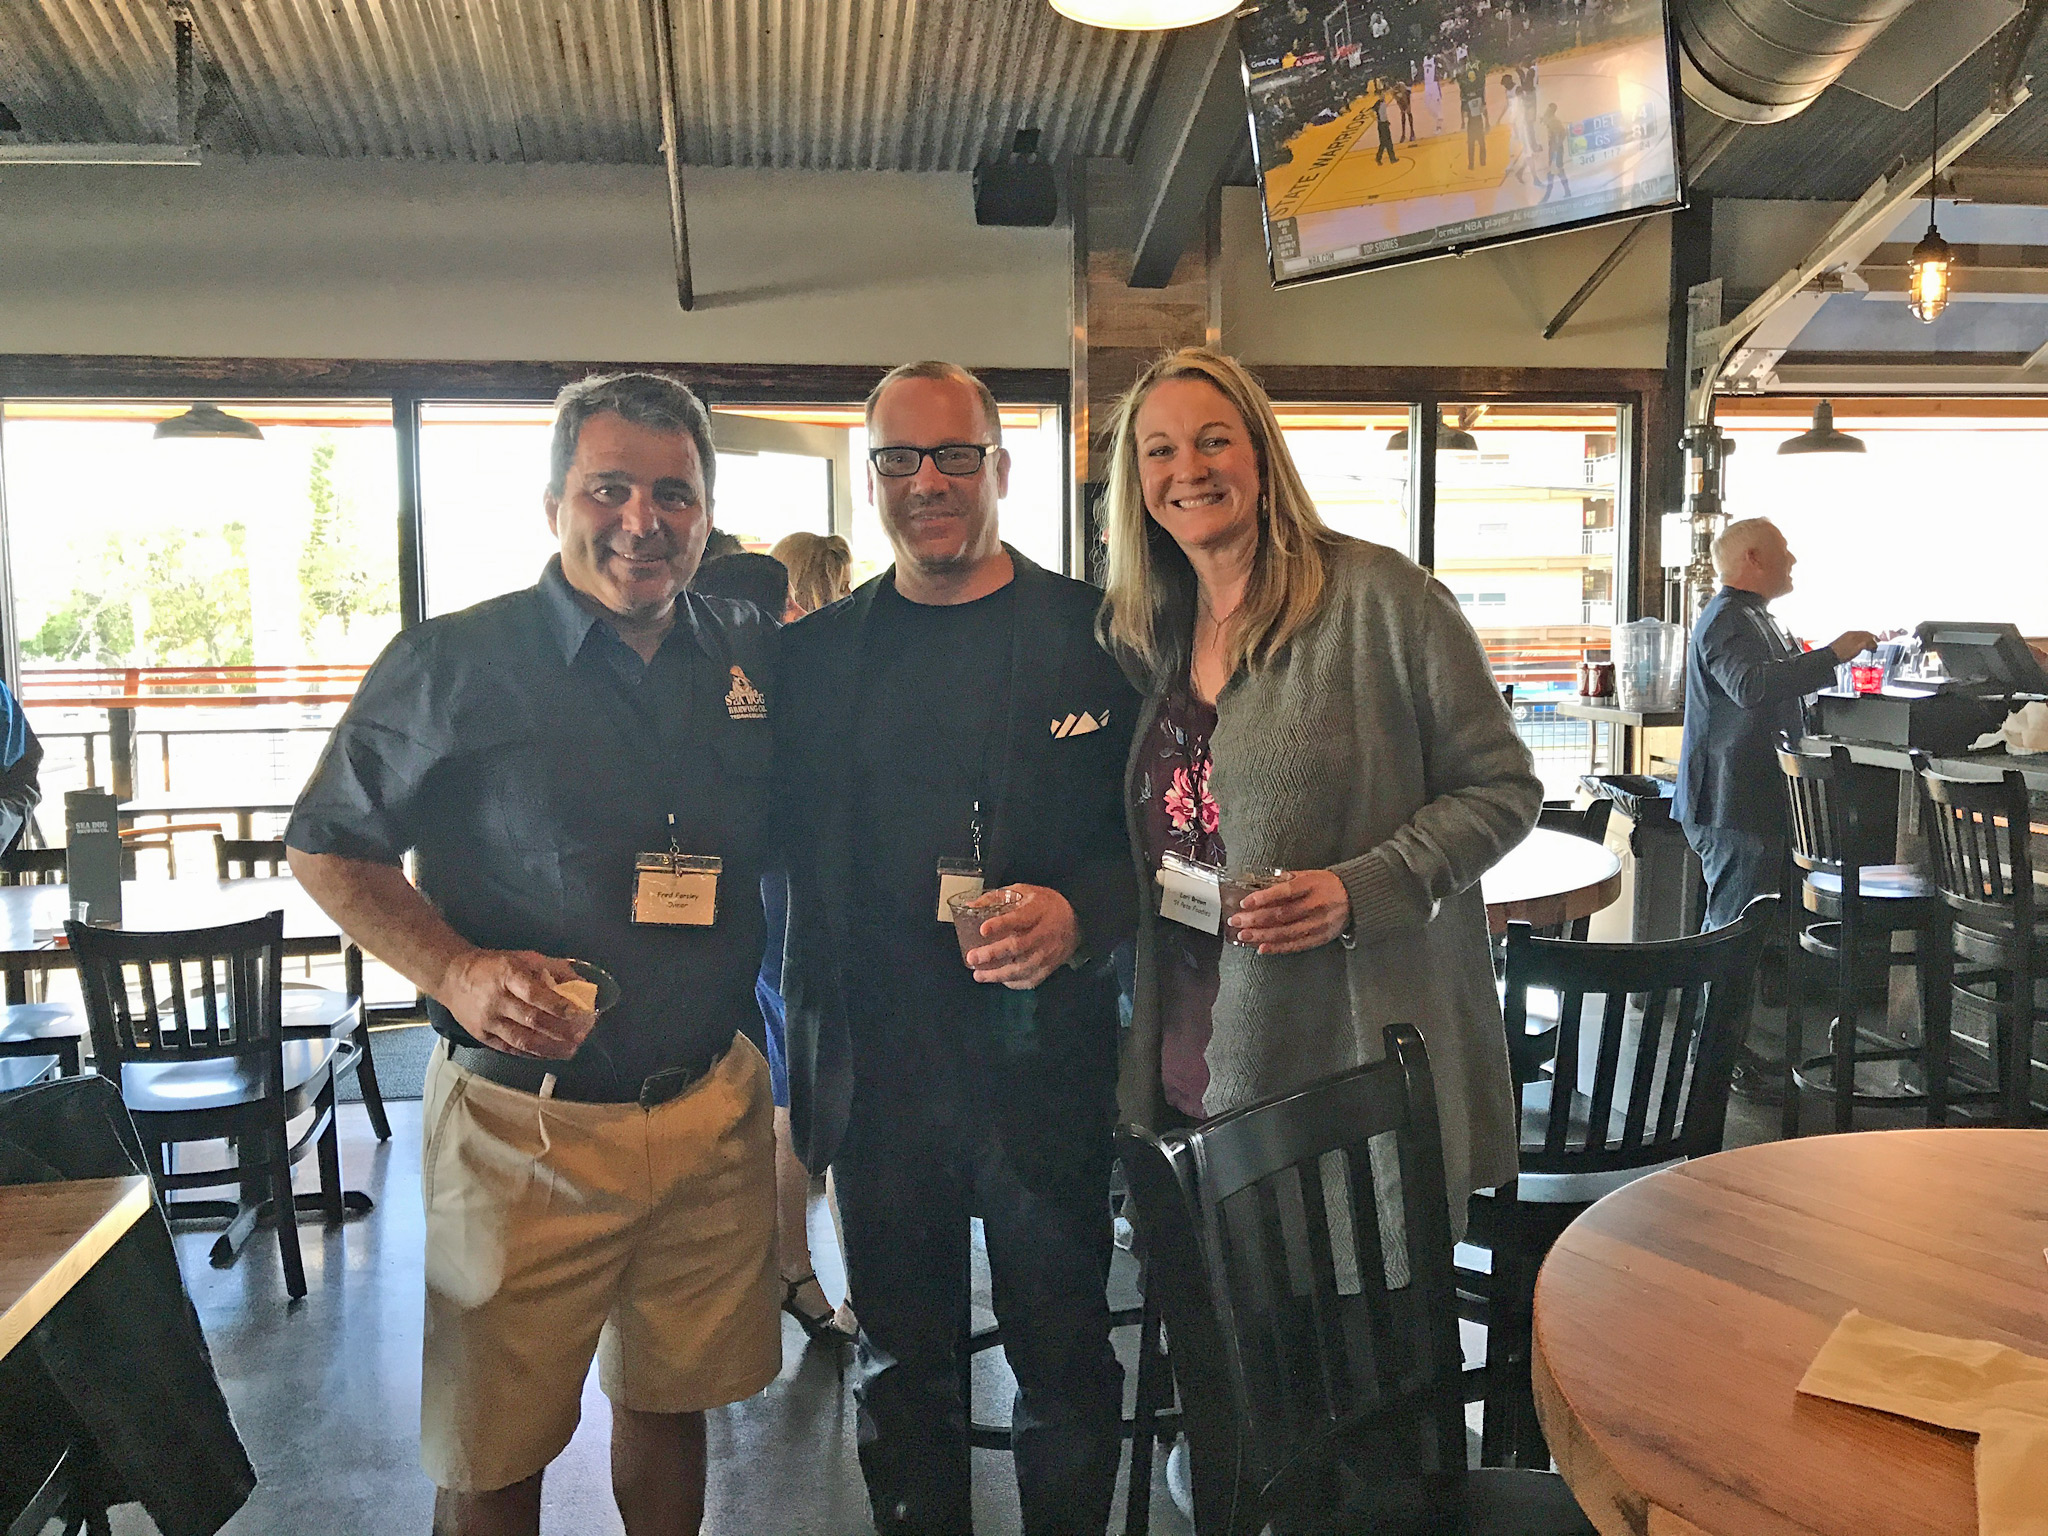 Fred Forsley (Sea Dog Founder & Owner), Kevin Godbee & Lori Brown of St. Pete Foodies